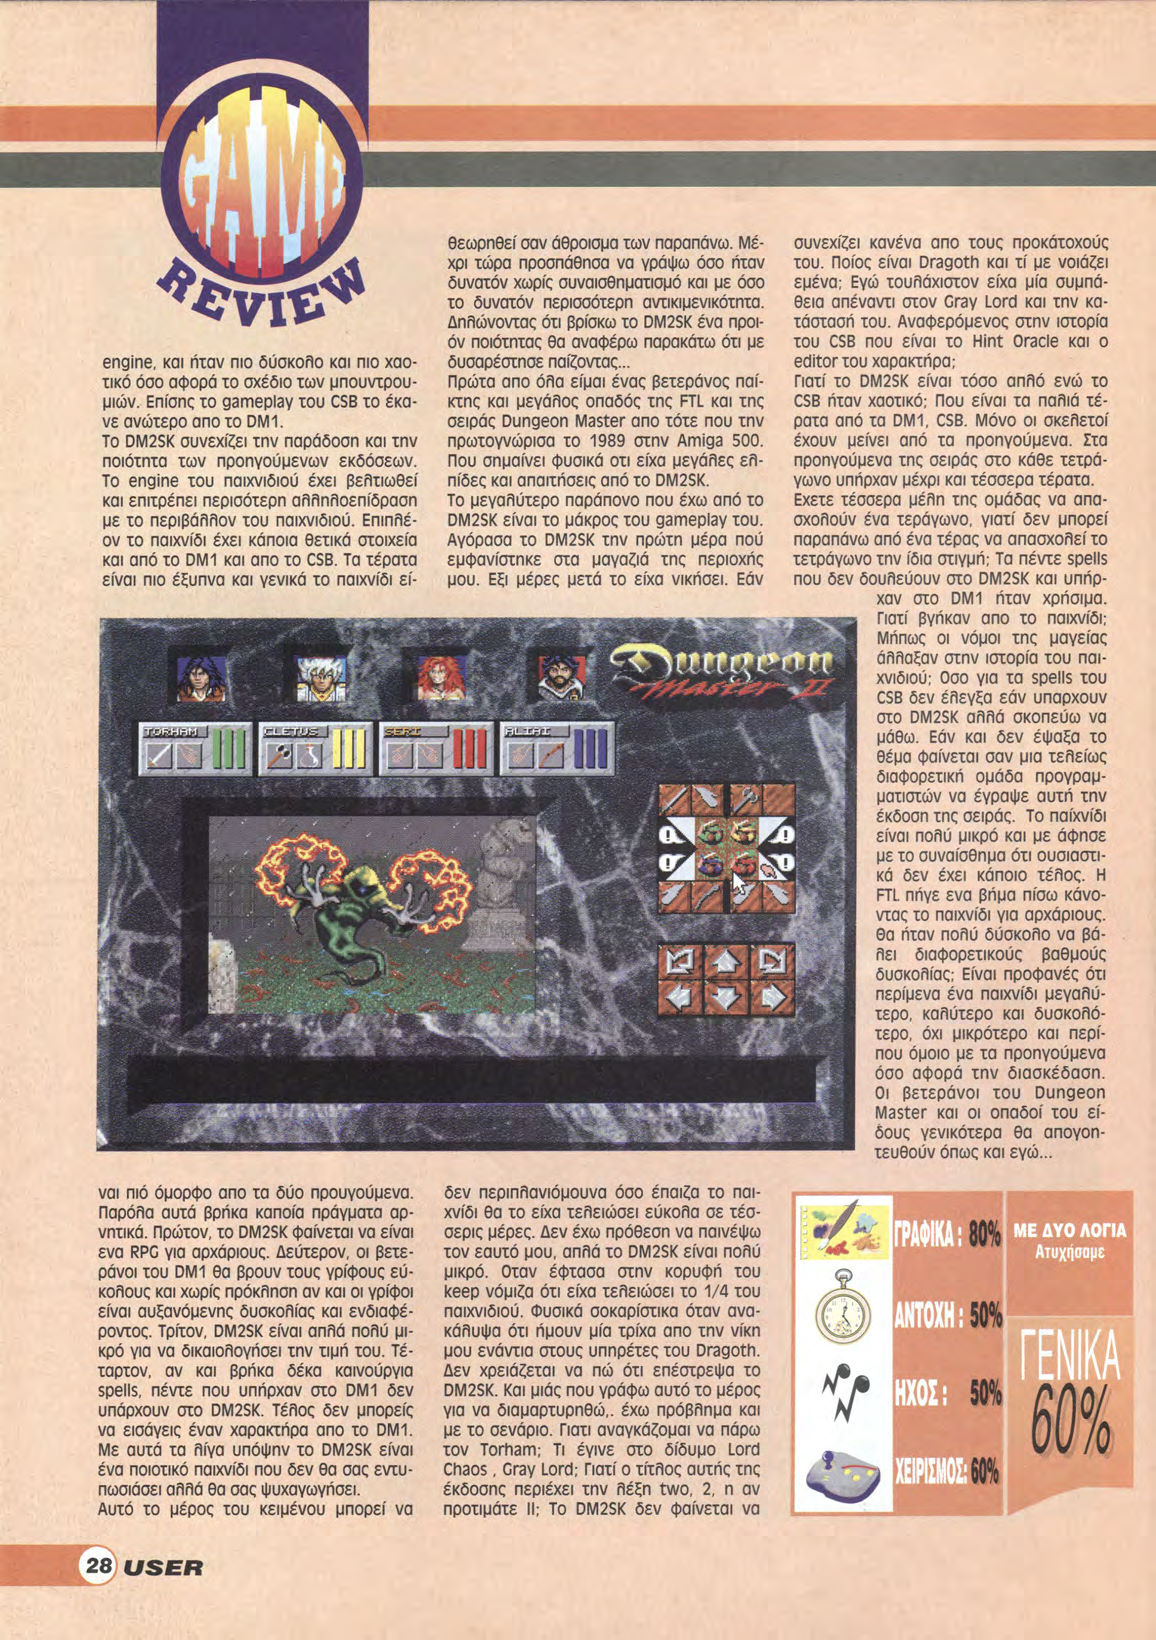 Dungeon Master II for PC Review published in Greek magazine 'User', Issue #66 February 1996, Page 28